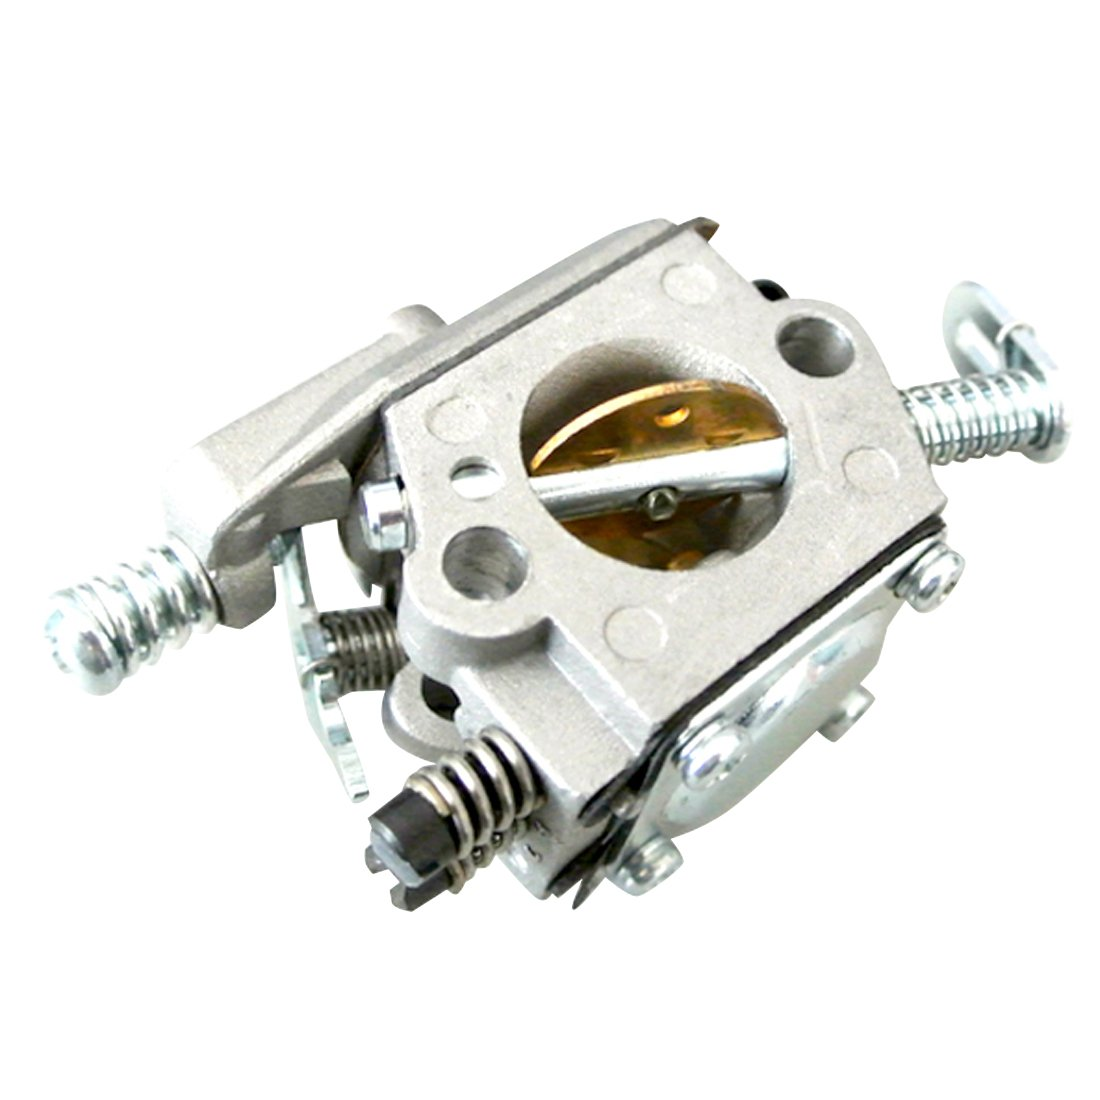 New Generic Carburetor Carb For STIHL Chainsaw 021 023 025 MS210 MS230 MS250